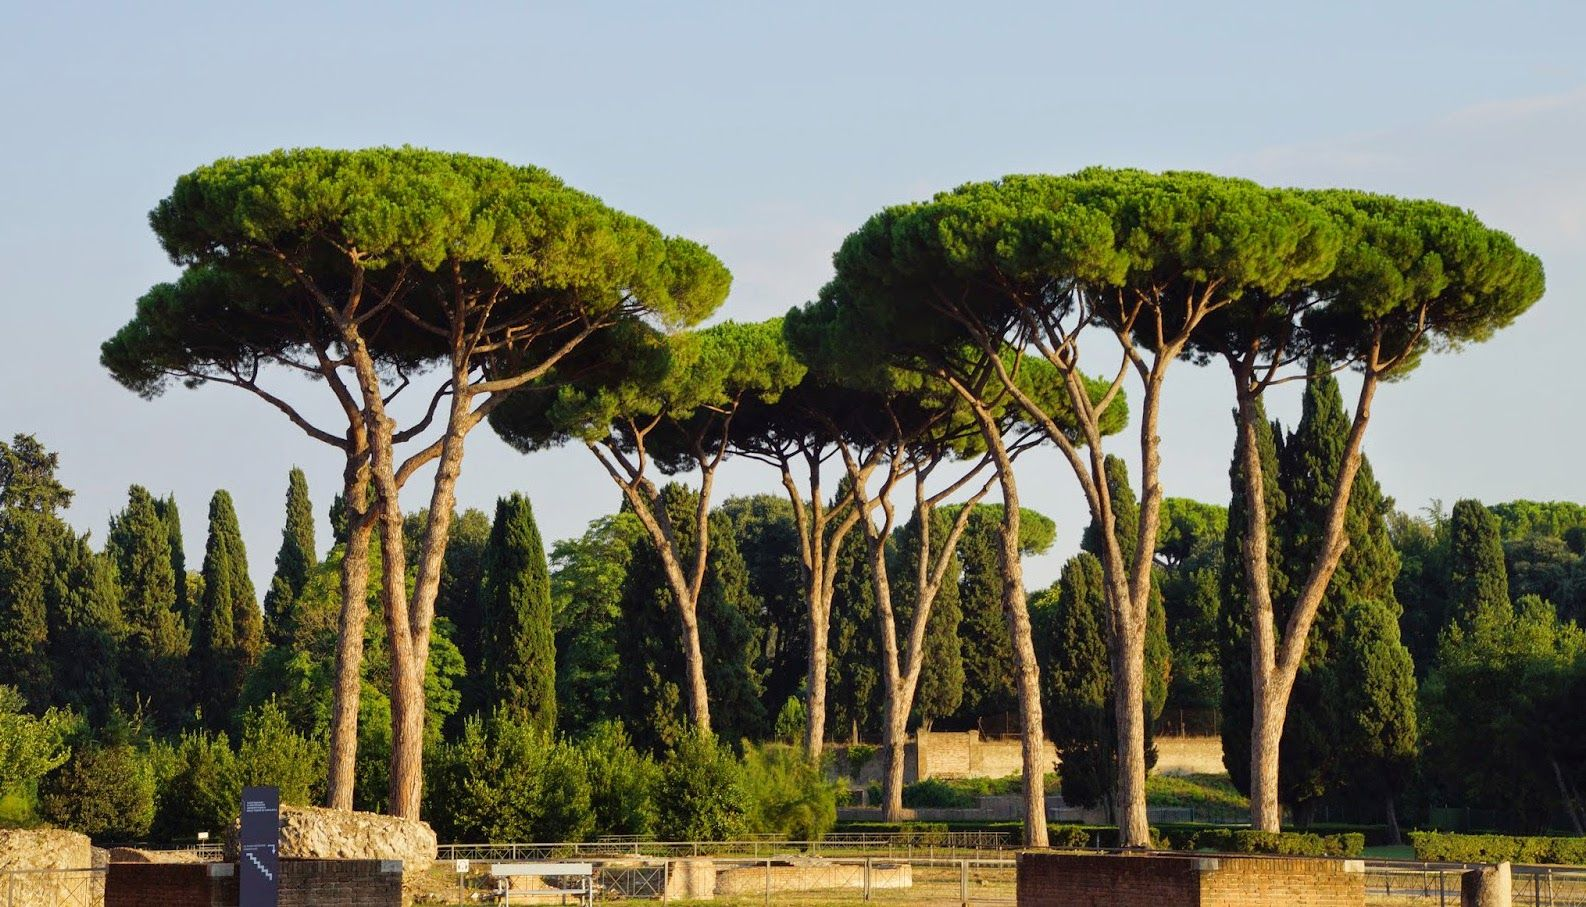 The Pines Of Rome With Images Italian Garden Rome Plants - Il Caminetto Rome Tripadvisor